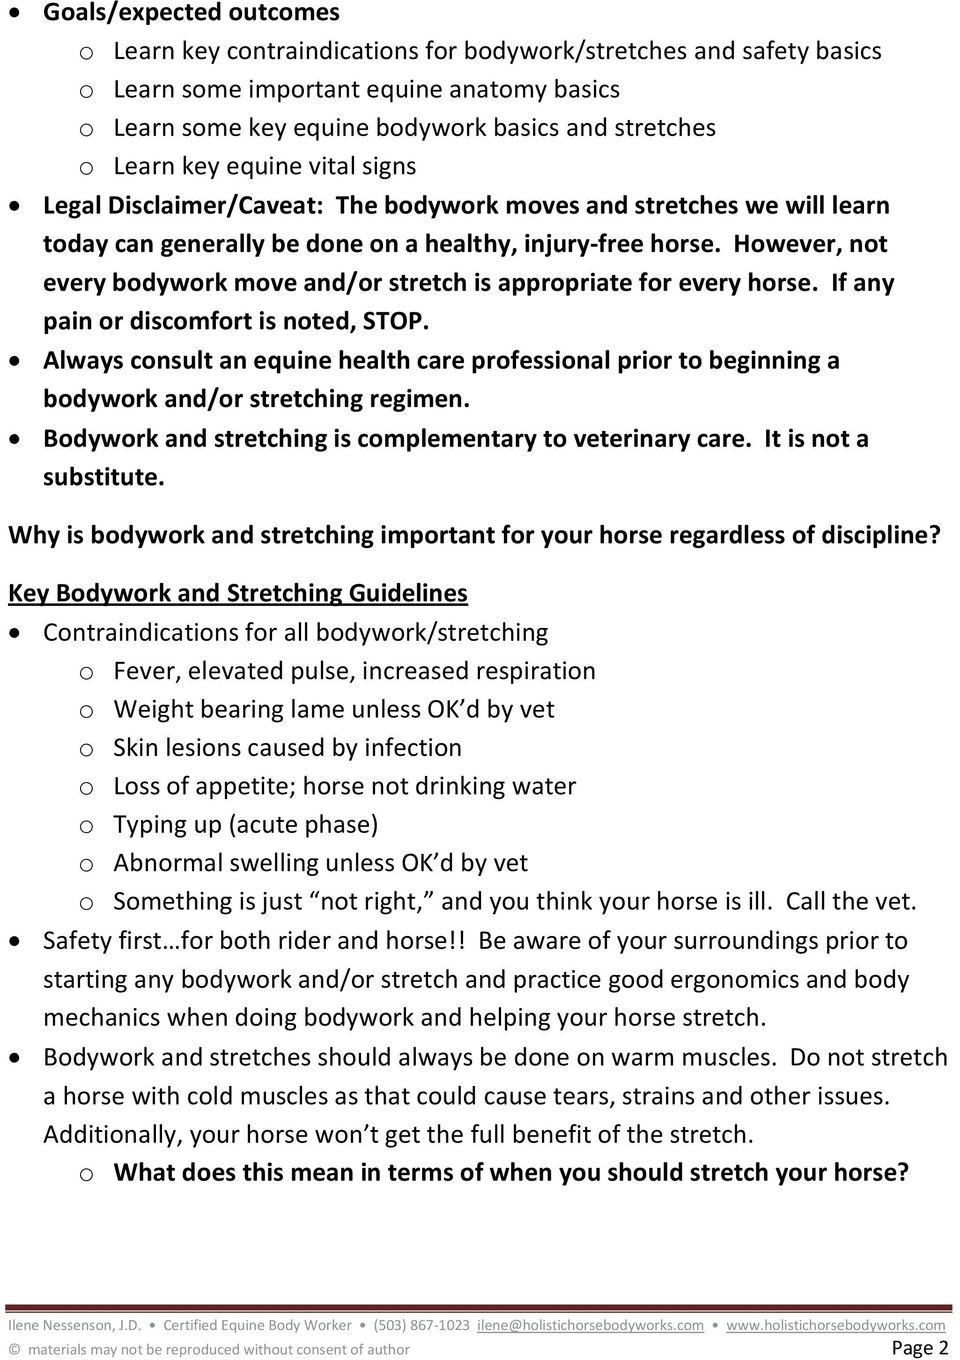 However, not every bodywork move and/or stretch is appropriate for every horse. If any pain or discomfort is noted, STOP.